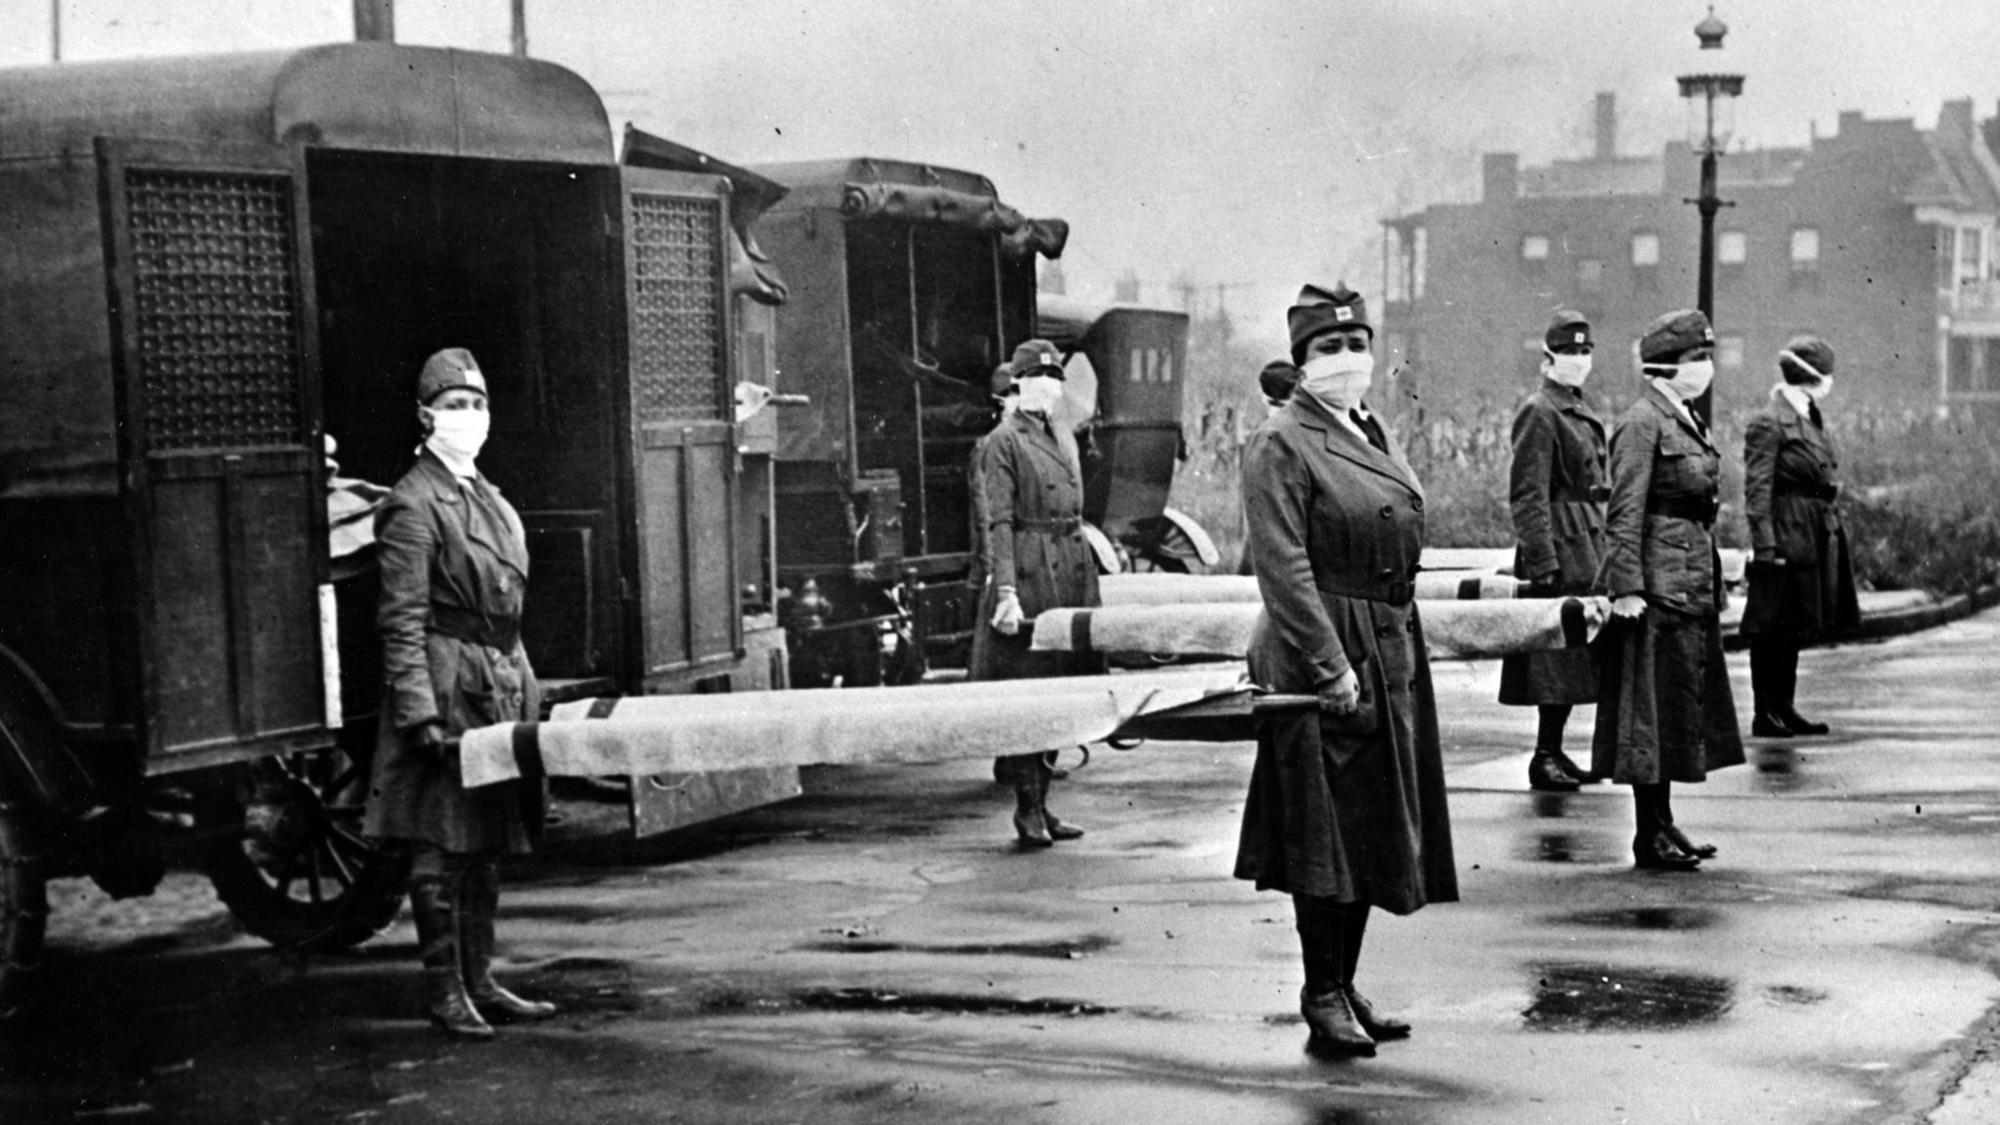 The flu pandemic that ravaged Chicago: Could it happen again?